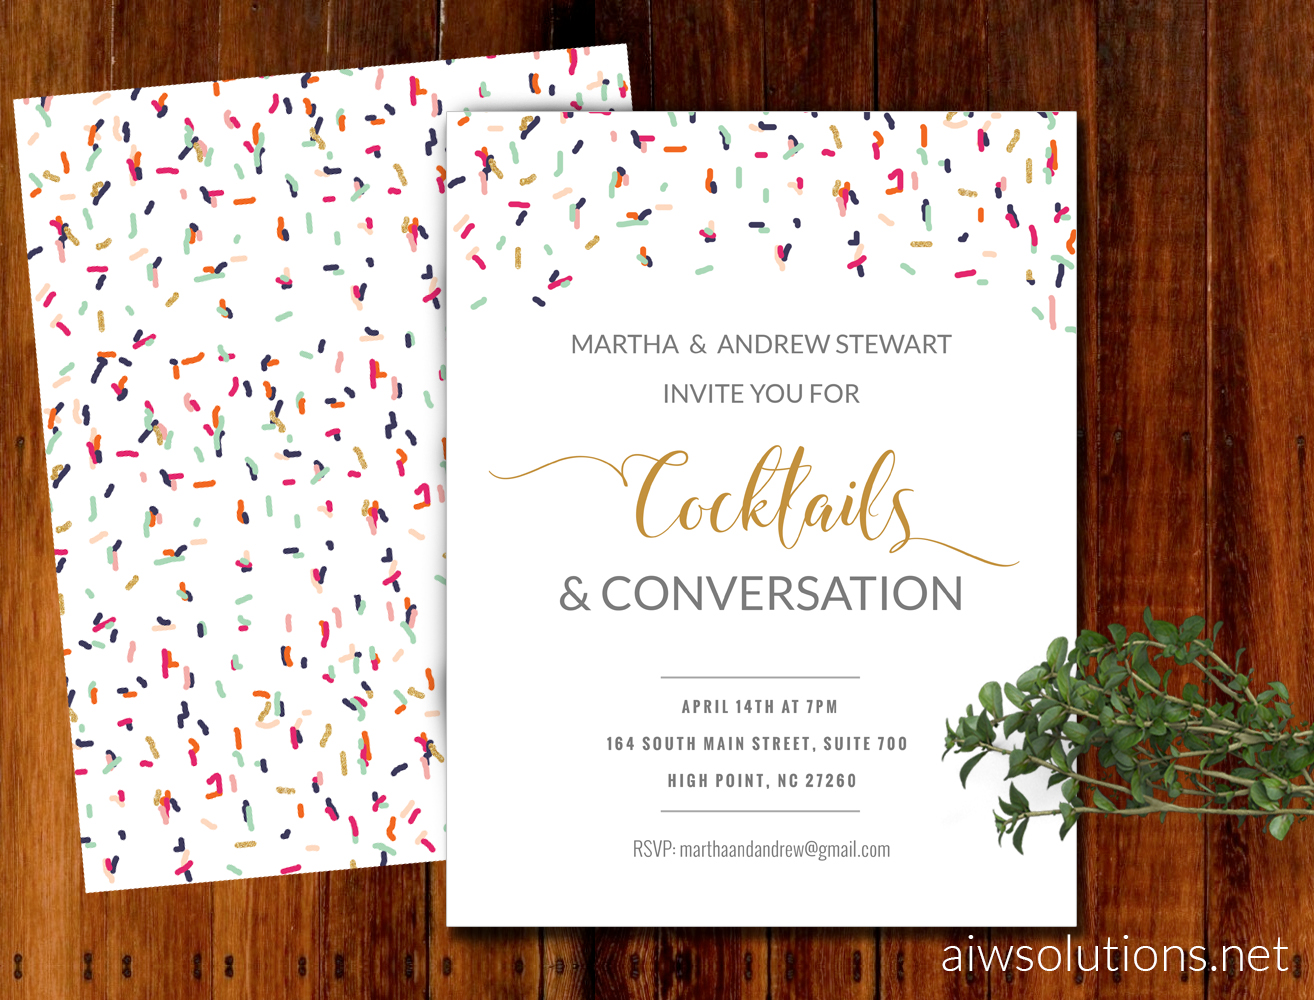 Event invitation flyer dolapgnetband invitations event template save the date template flyer template stopboris Choice Image